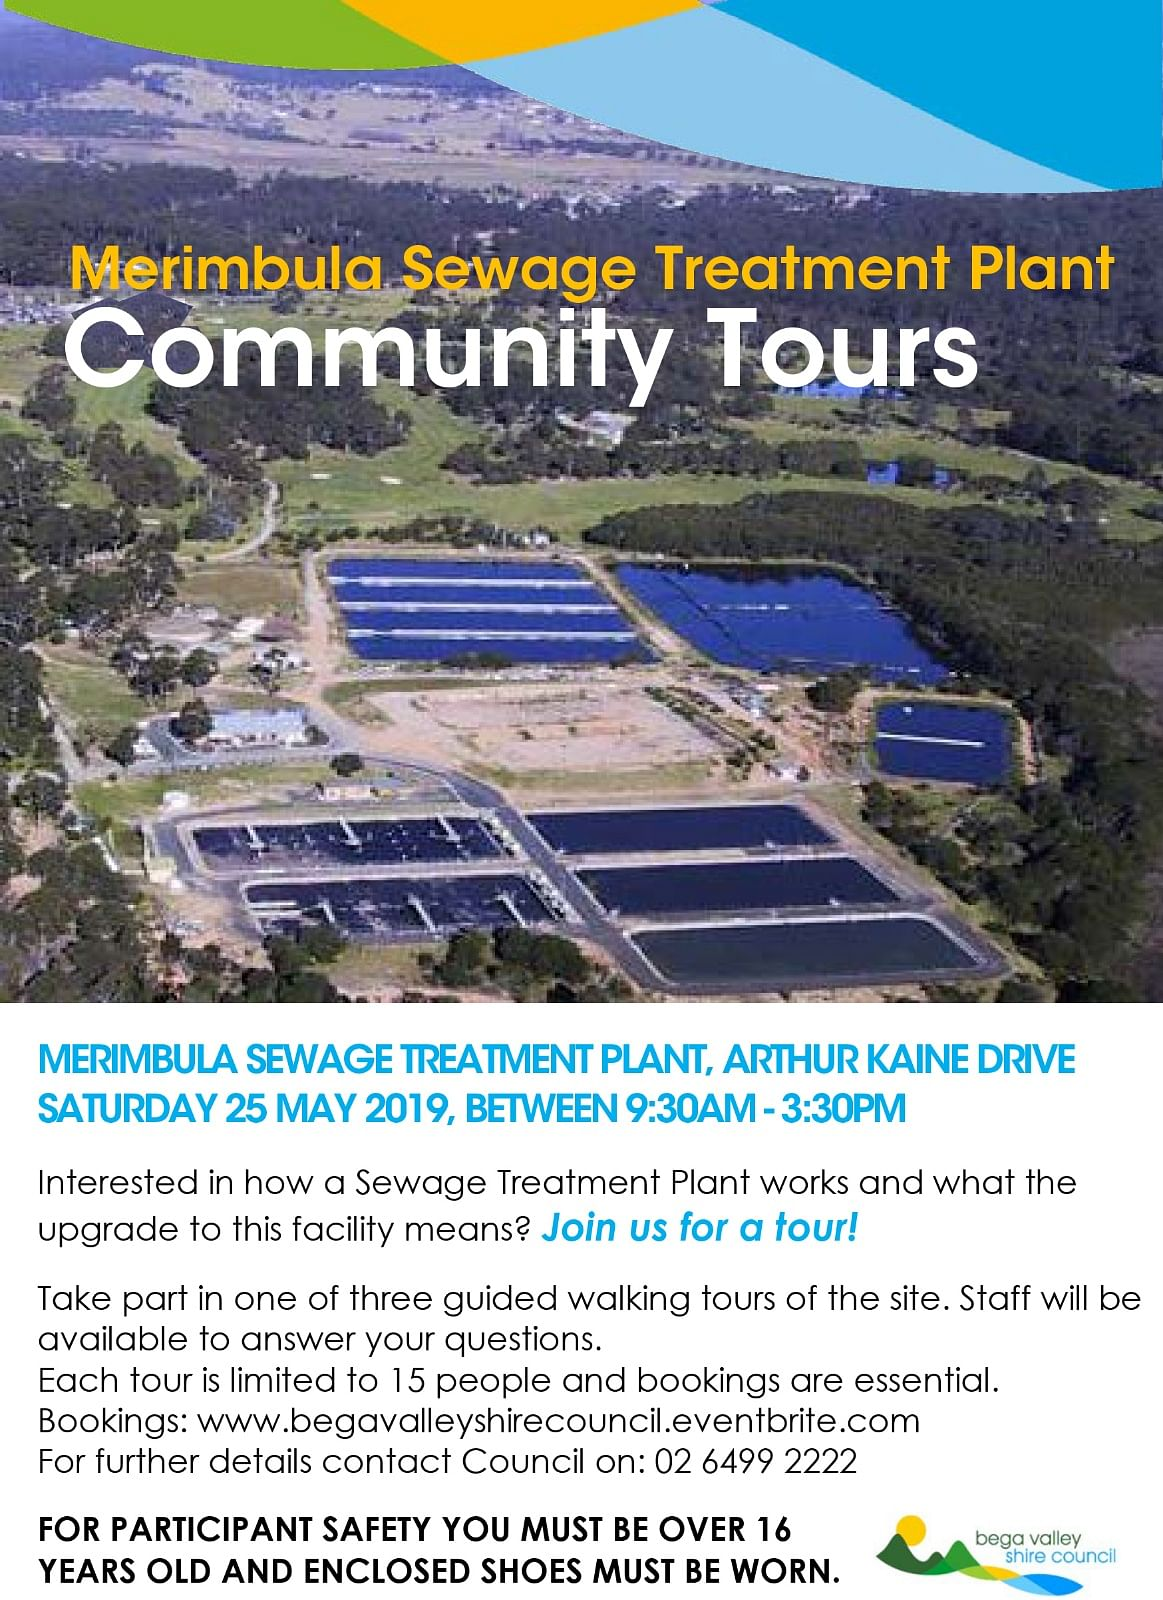 Flyer for Merimbula Sewage Treatment Plant open day public tours.